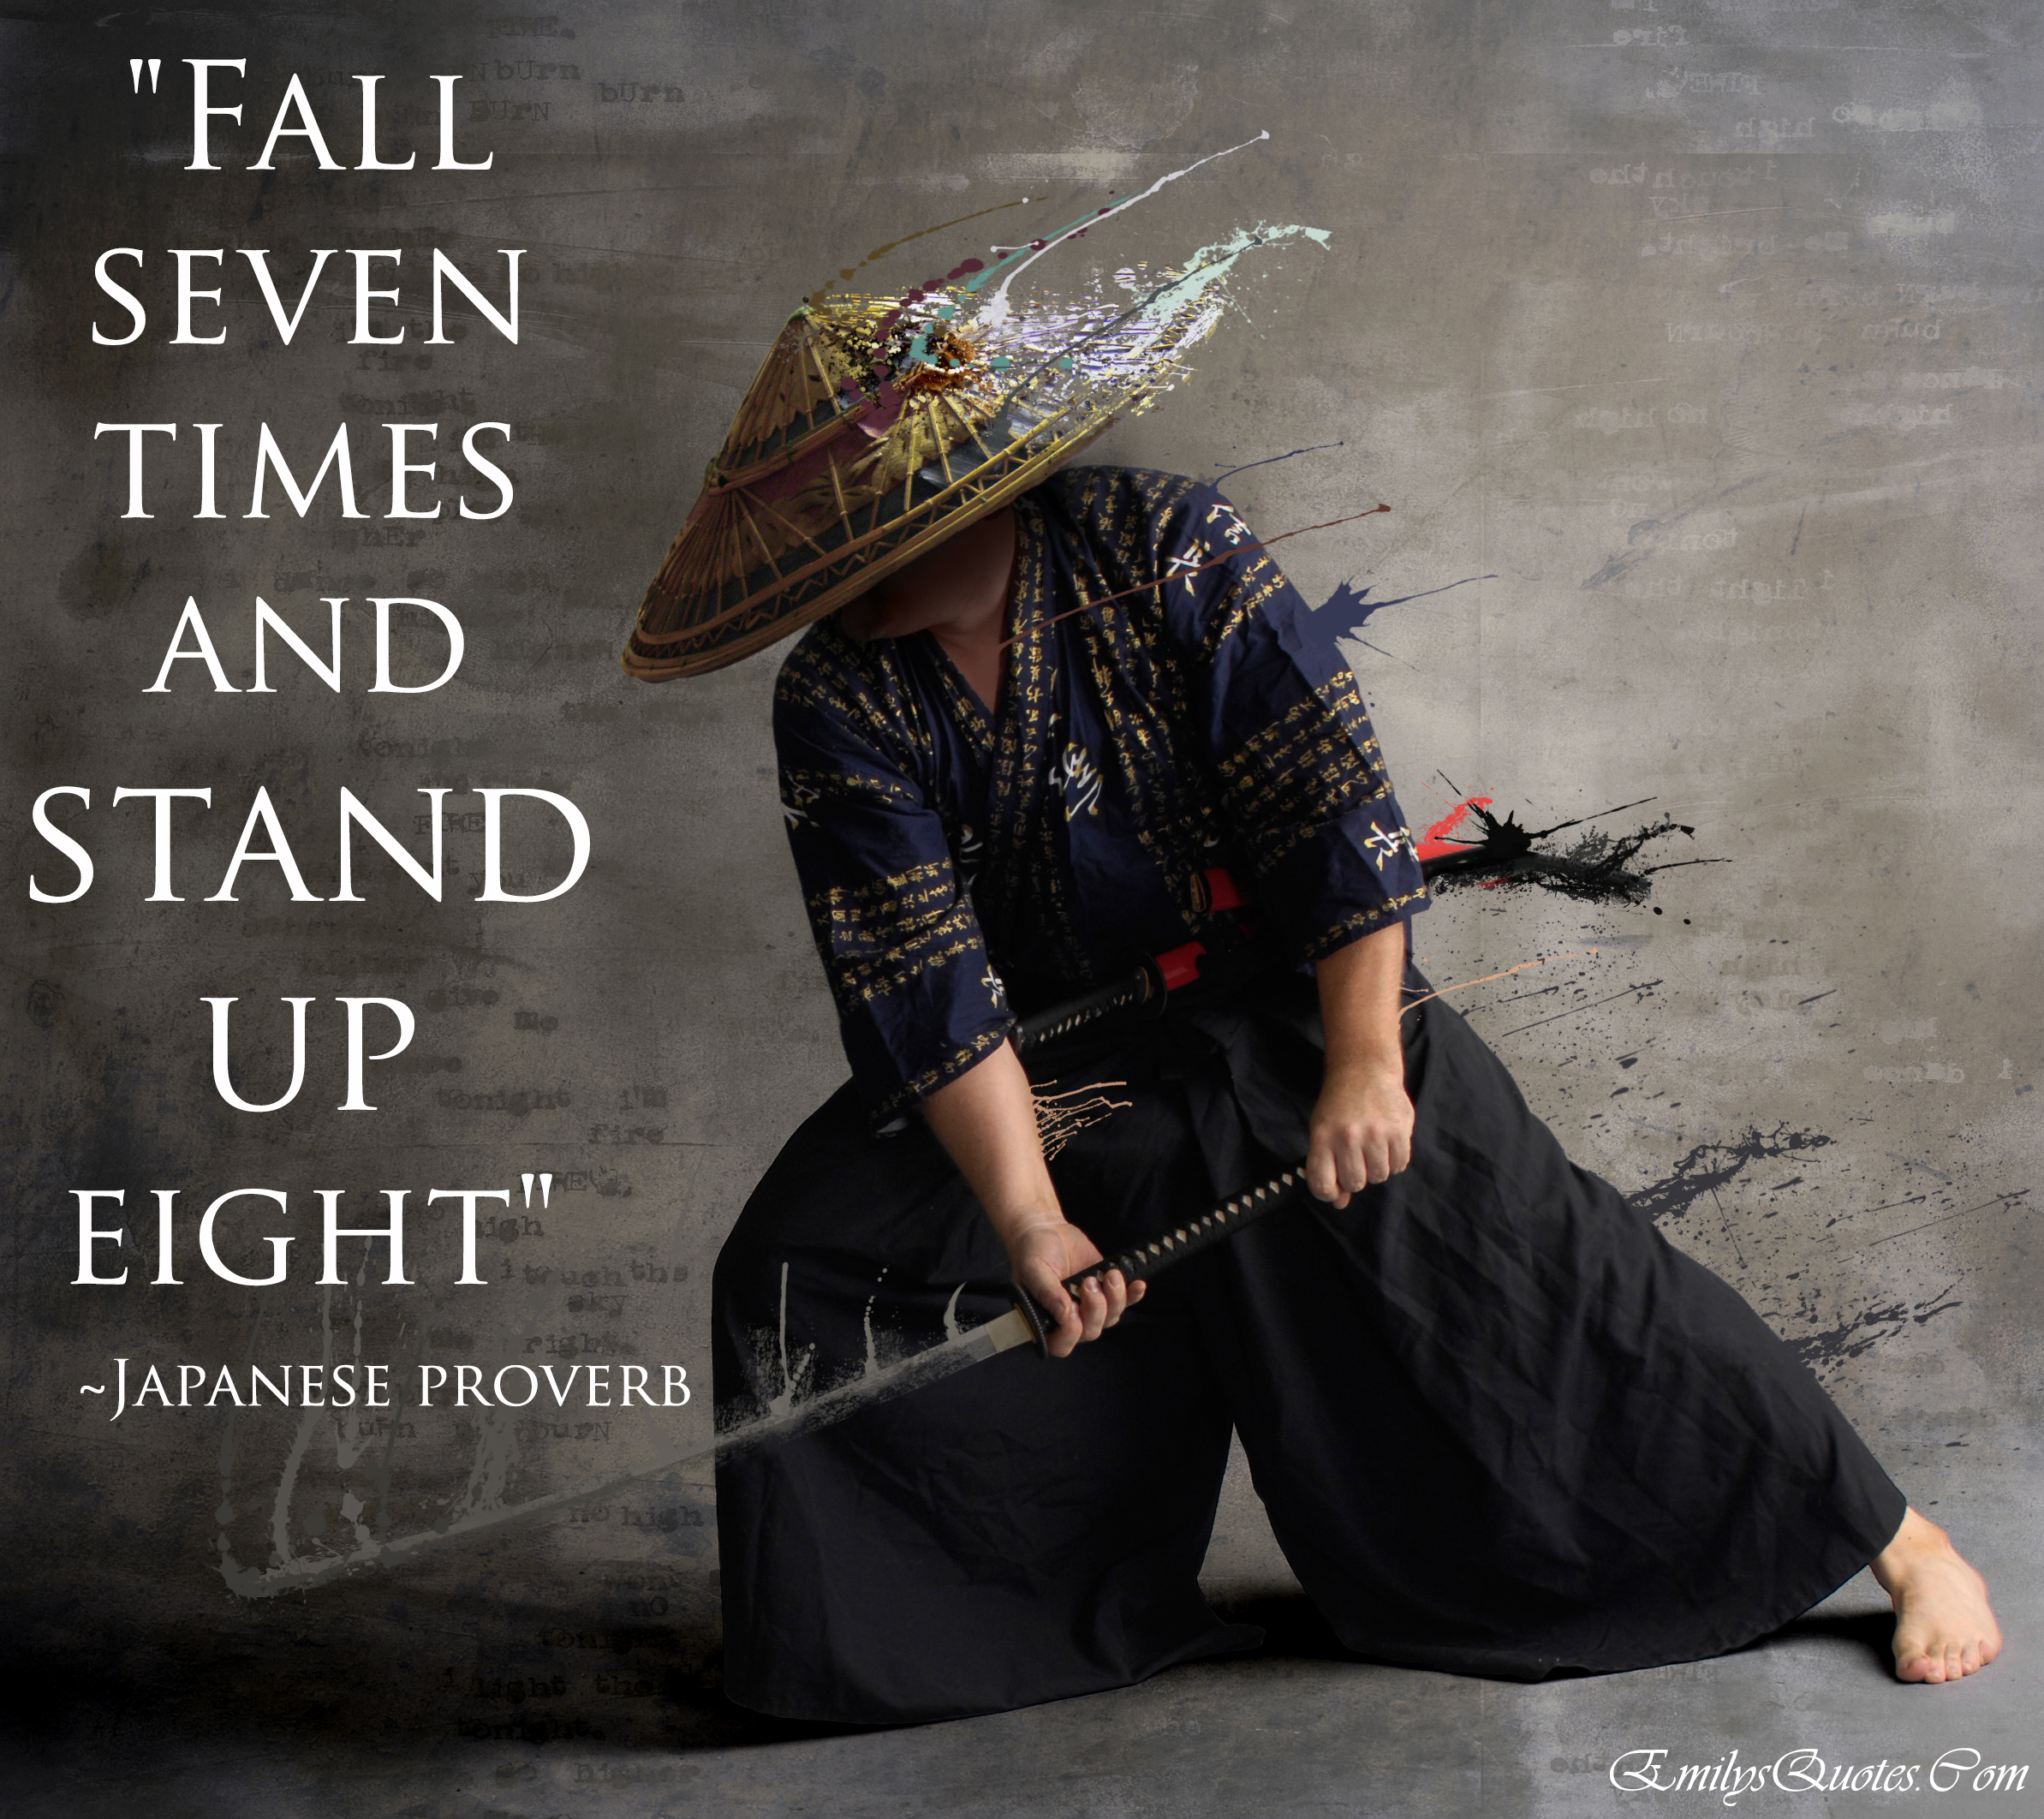 Famous Japanese Quotes About Friendship : Fall seven times and stand up eight popular